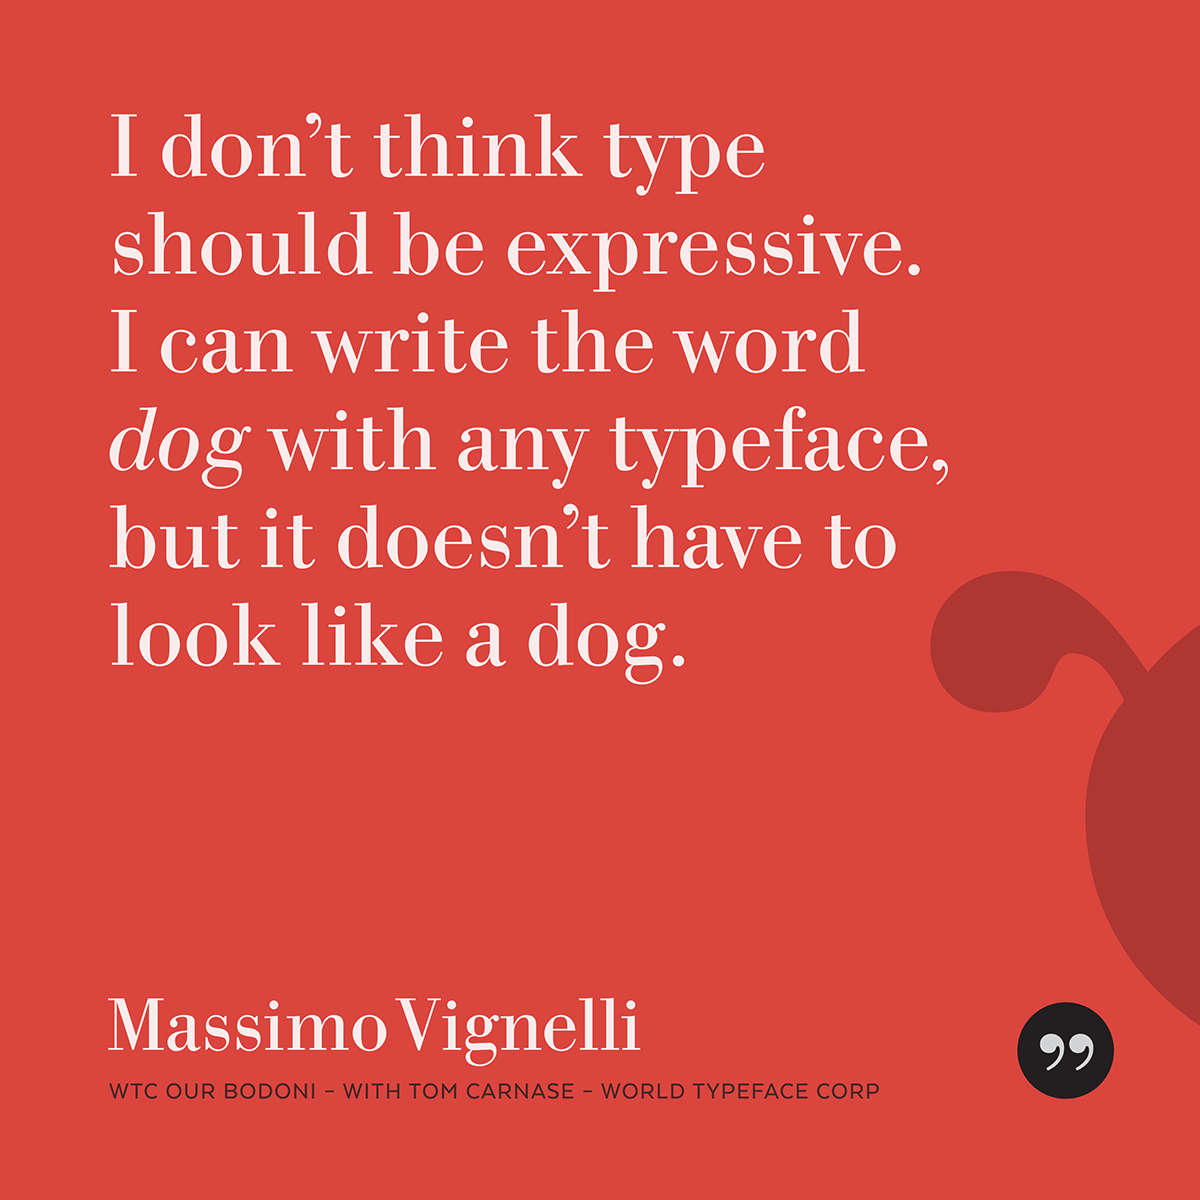 Thoughts on Type from Type People by Bill Dawson